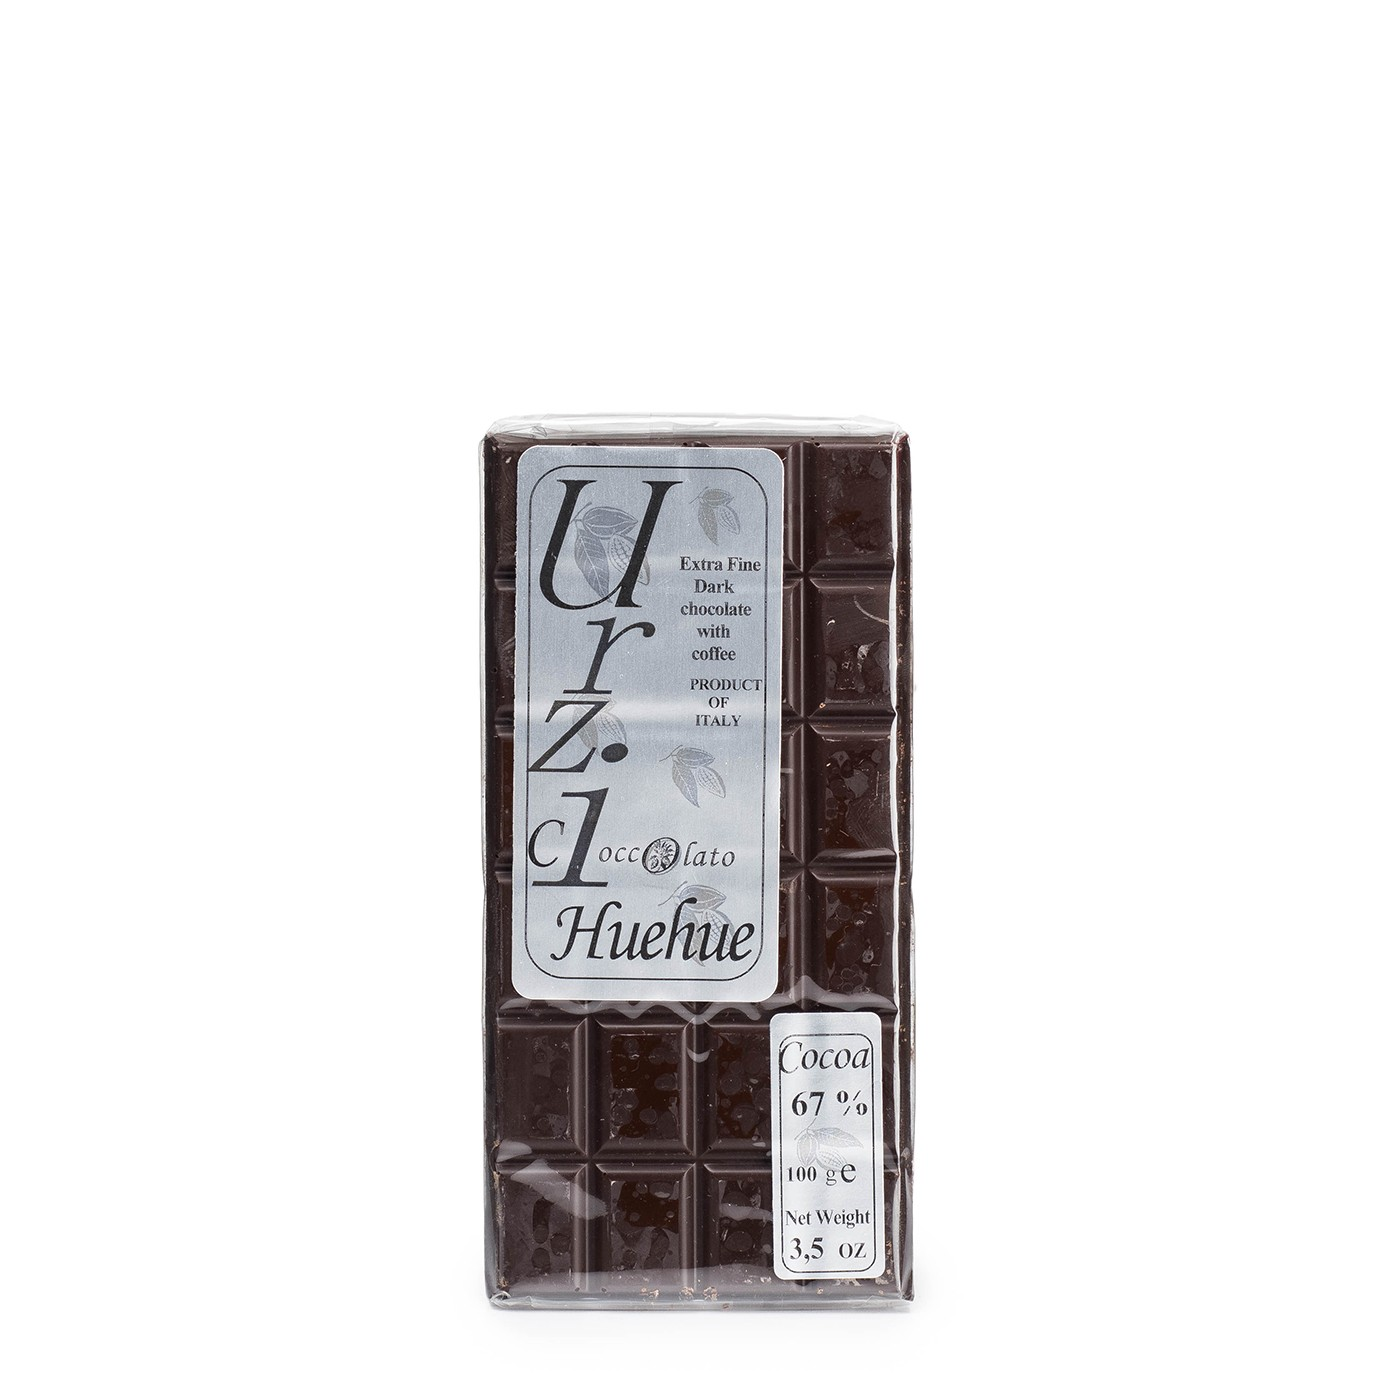 Dark Chocolate with Huehue Coffee 3.5 oz